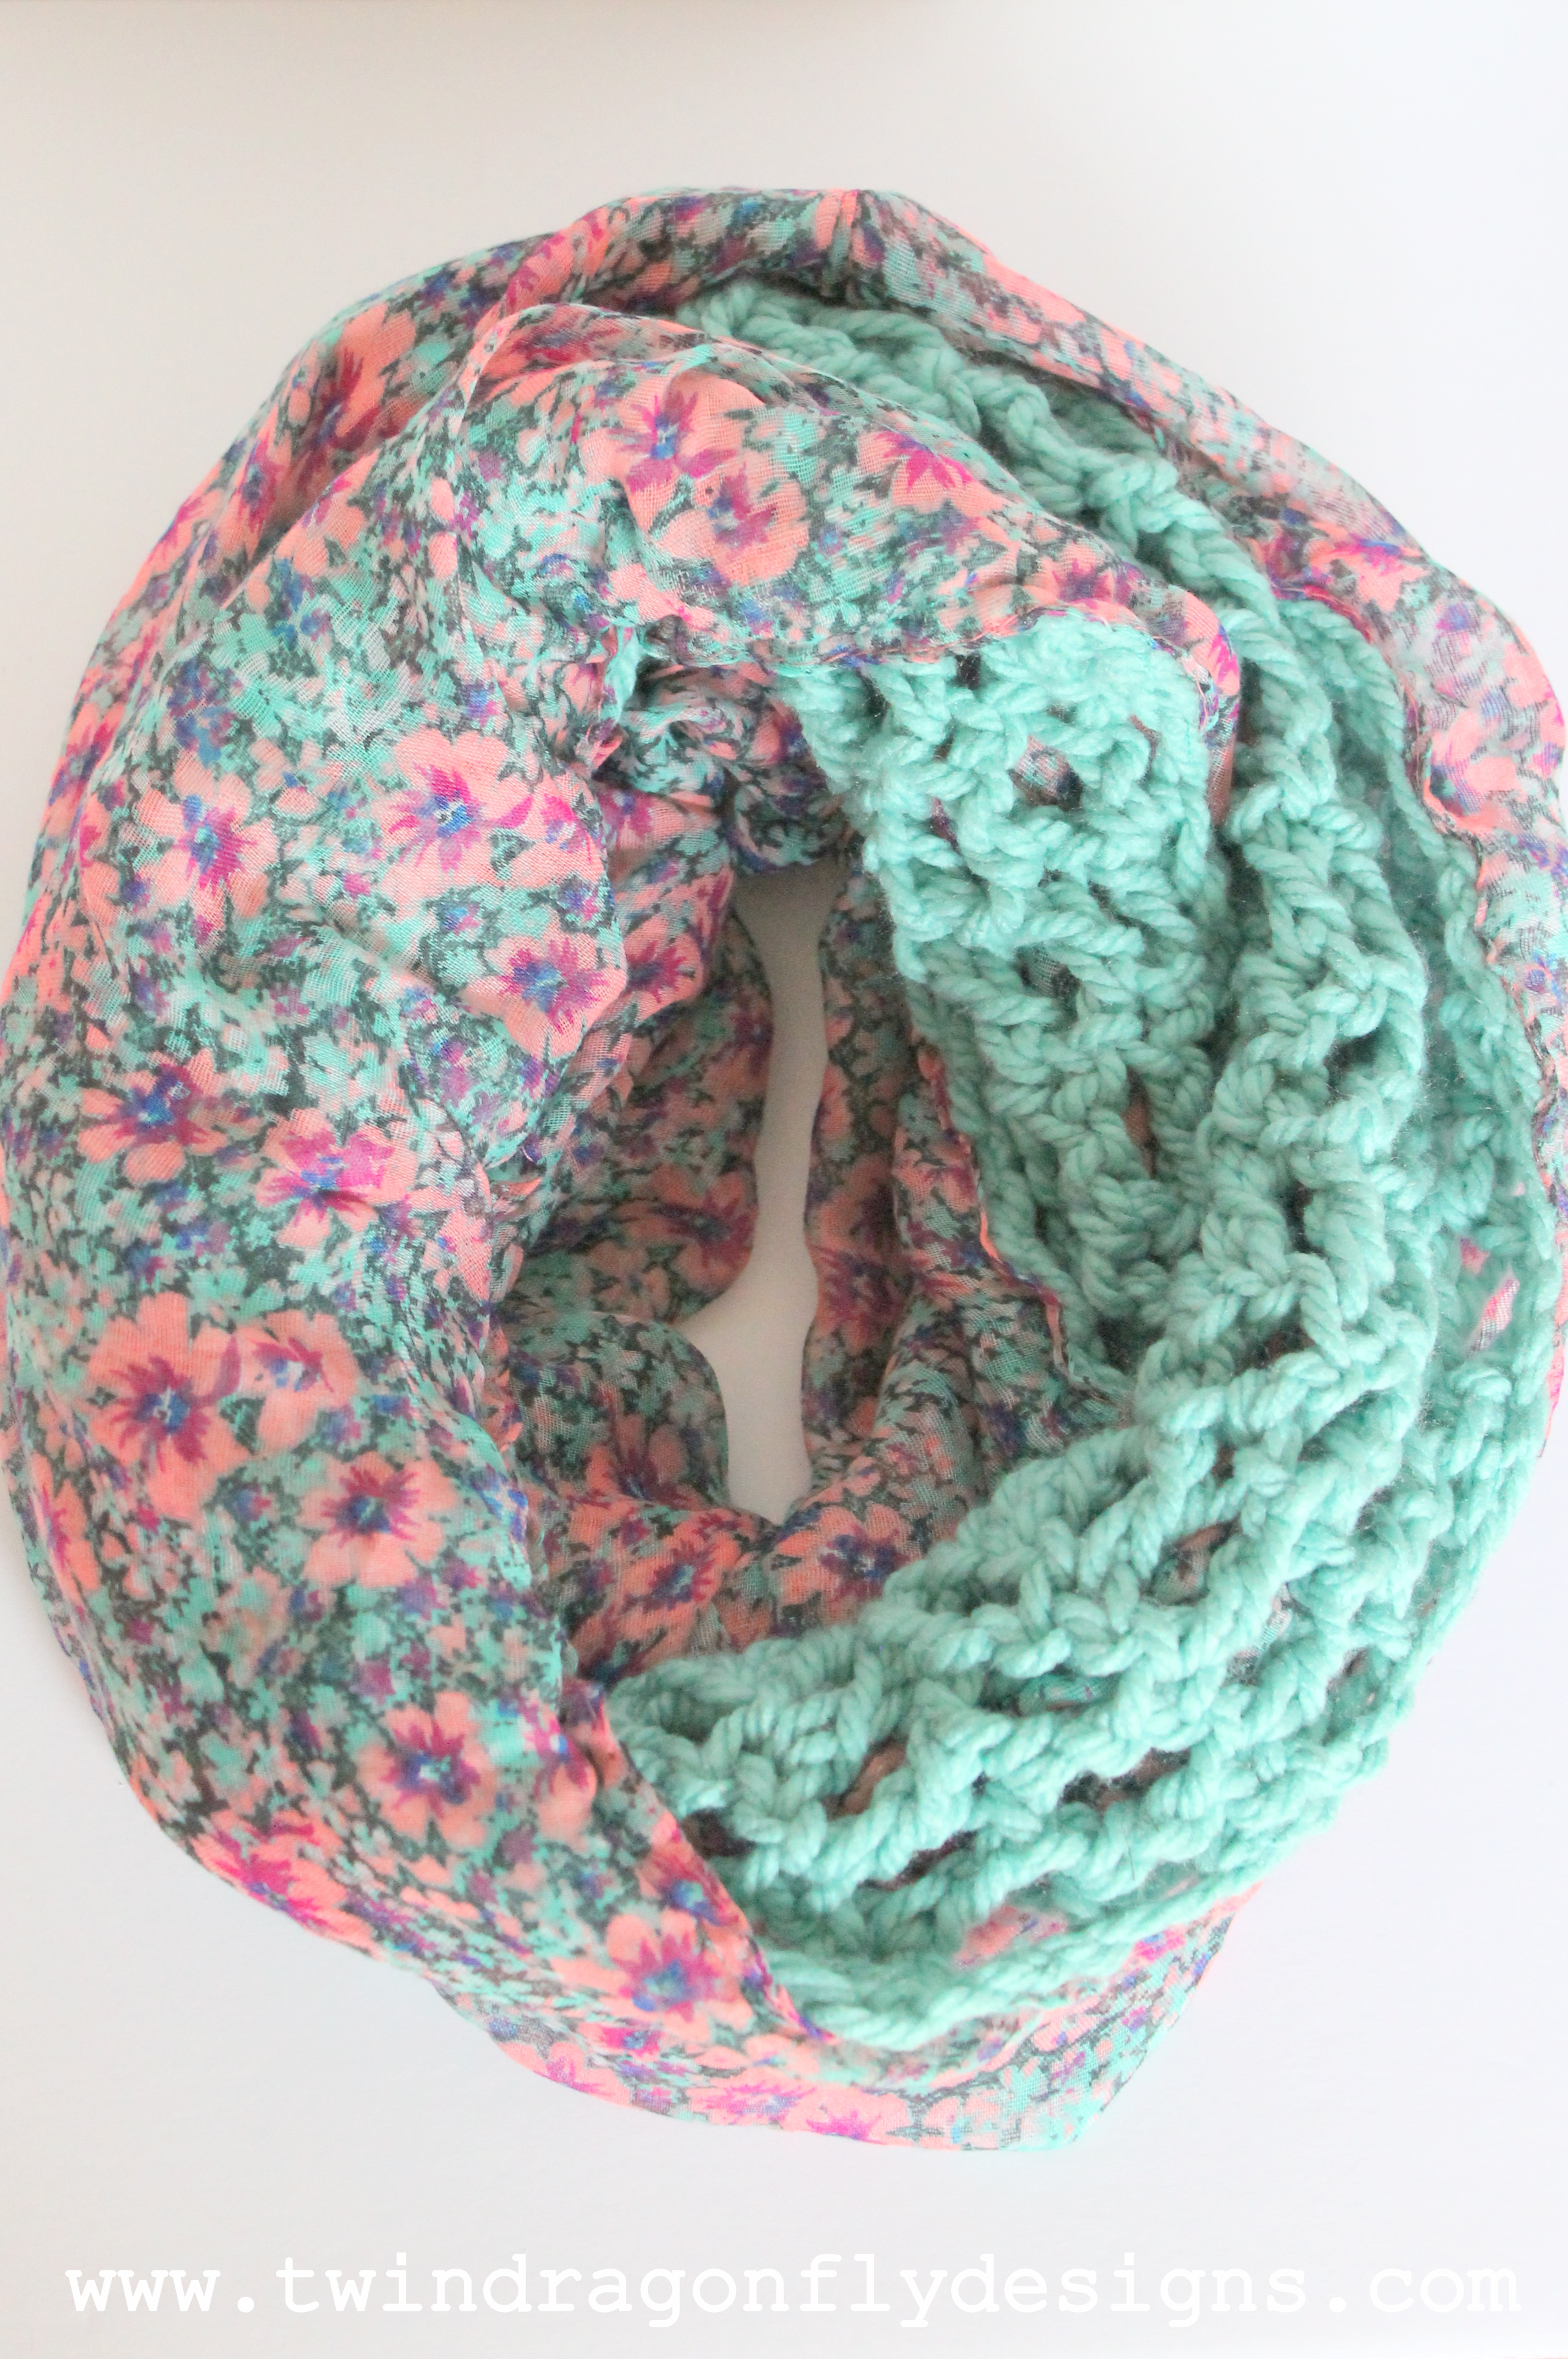 Crochet tutorial archives dragonfly designs crochet chiffon infinity scarf tutorial baditri Images